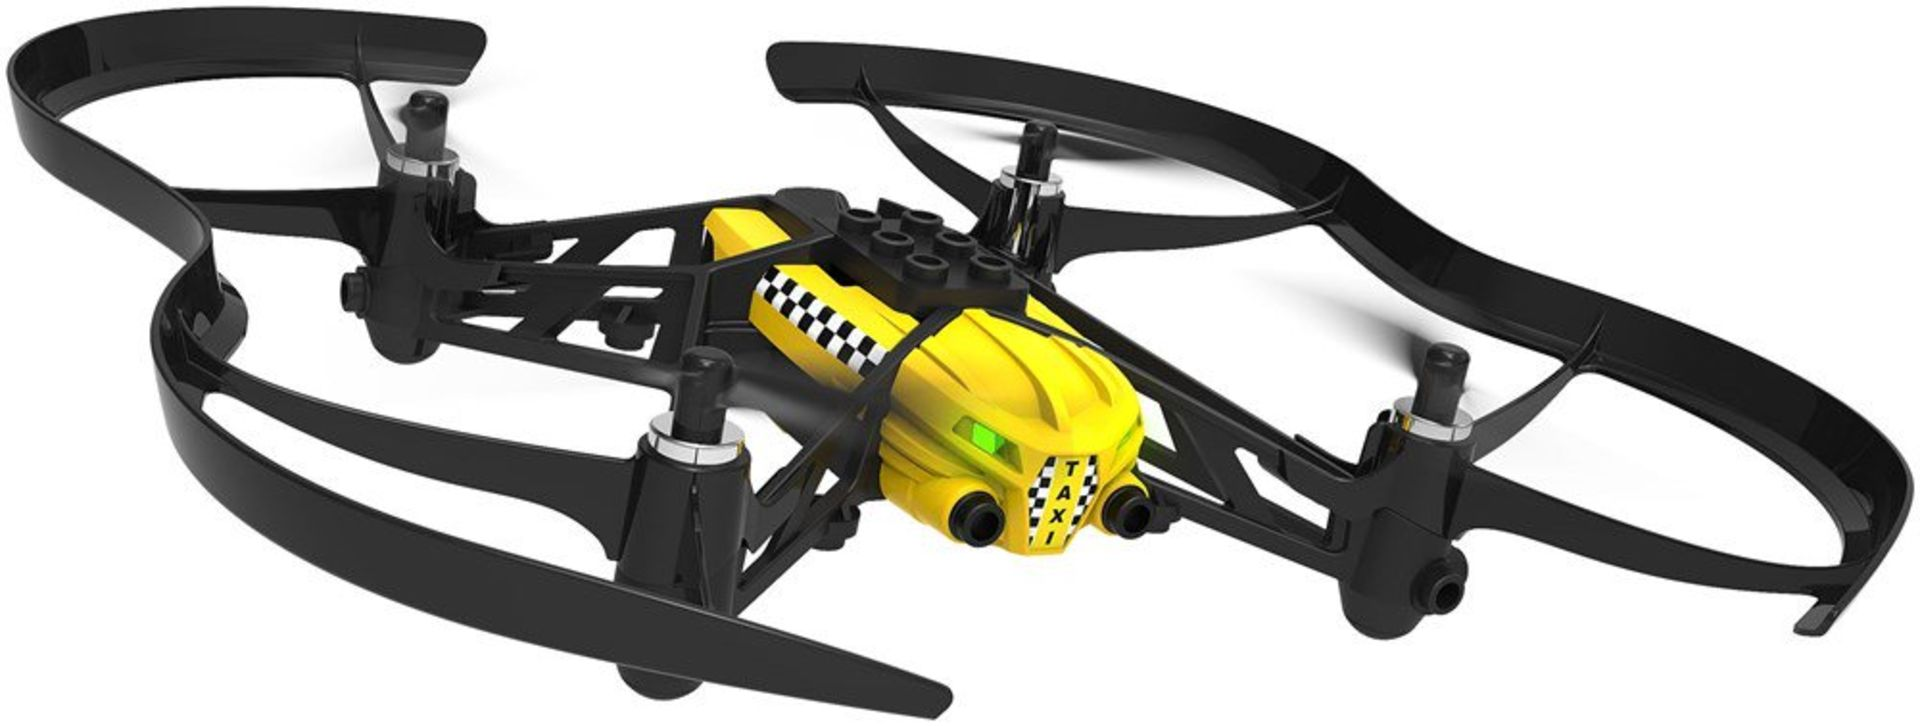 Lot 10005 - V Brand New Parrot Minidrone Travis Airborn Smartphone Controlled Cargo Drone - 360 Degree